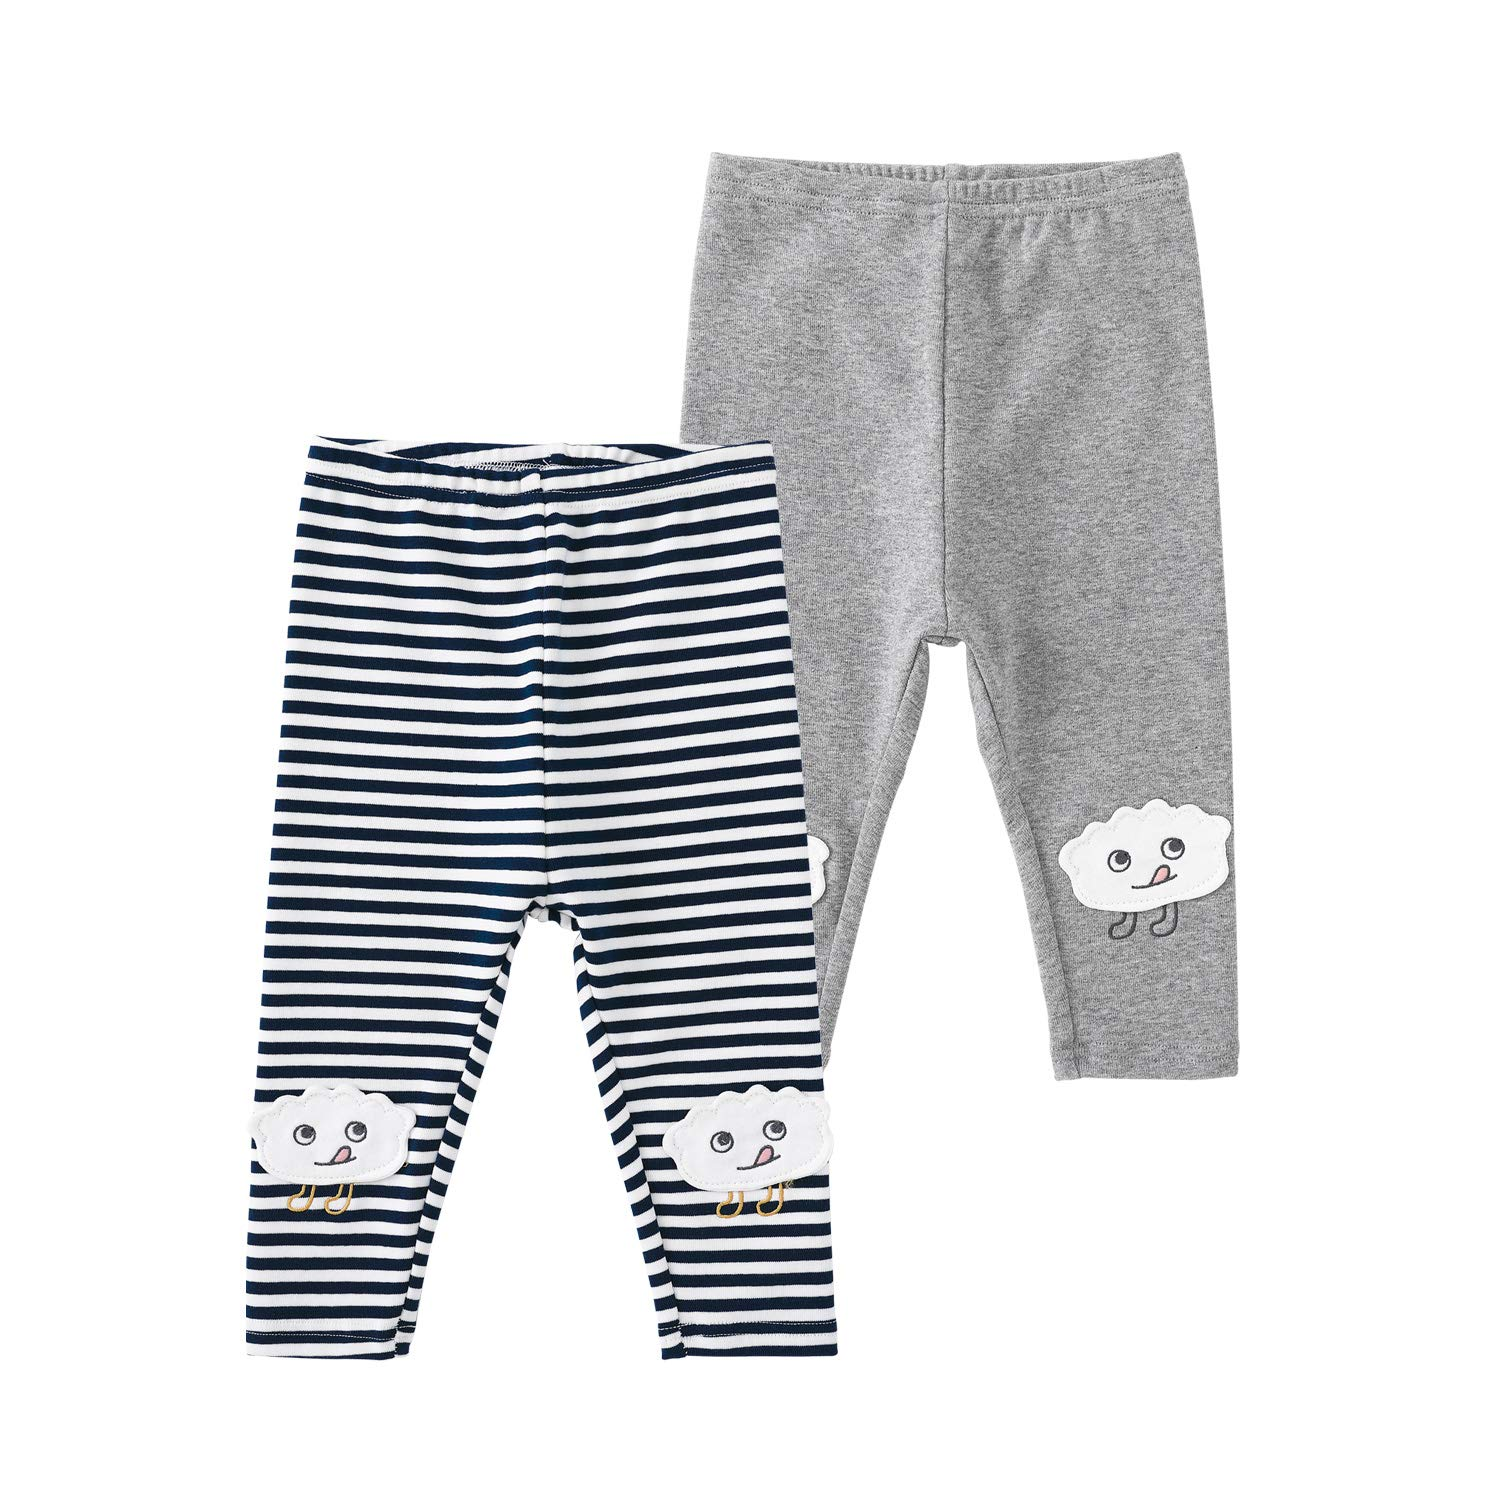 pureborn Baby and Toddler Girls 2 Pack Leggings Pants Cotton Spring Essentials